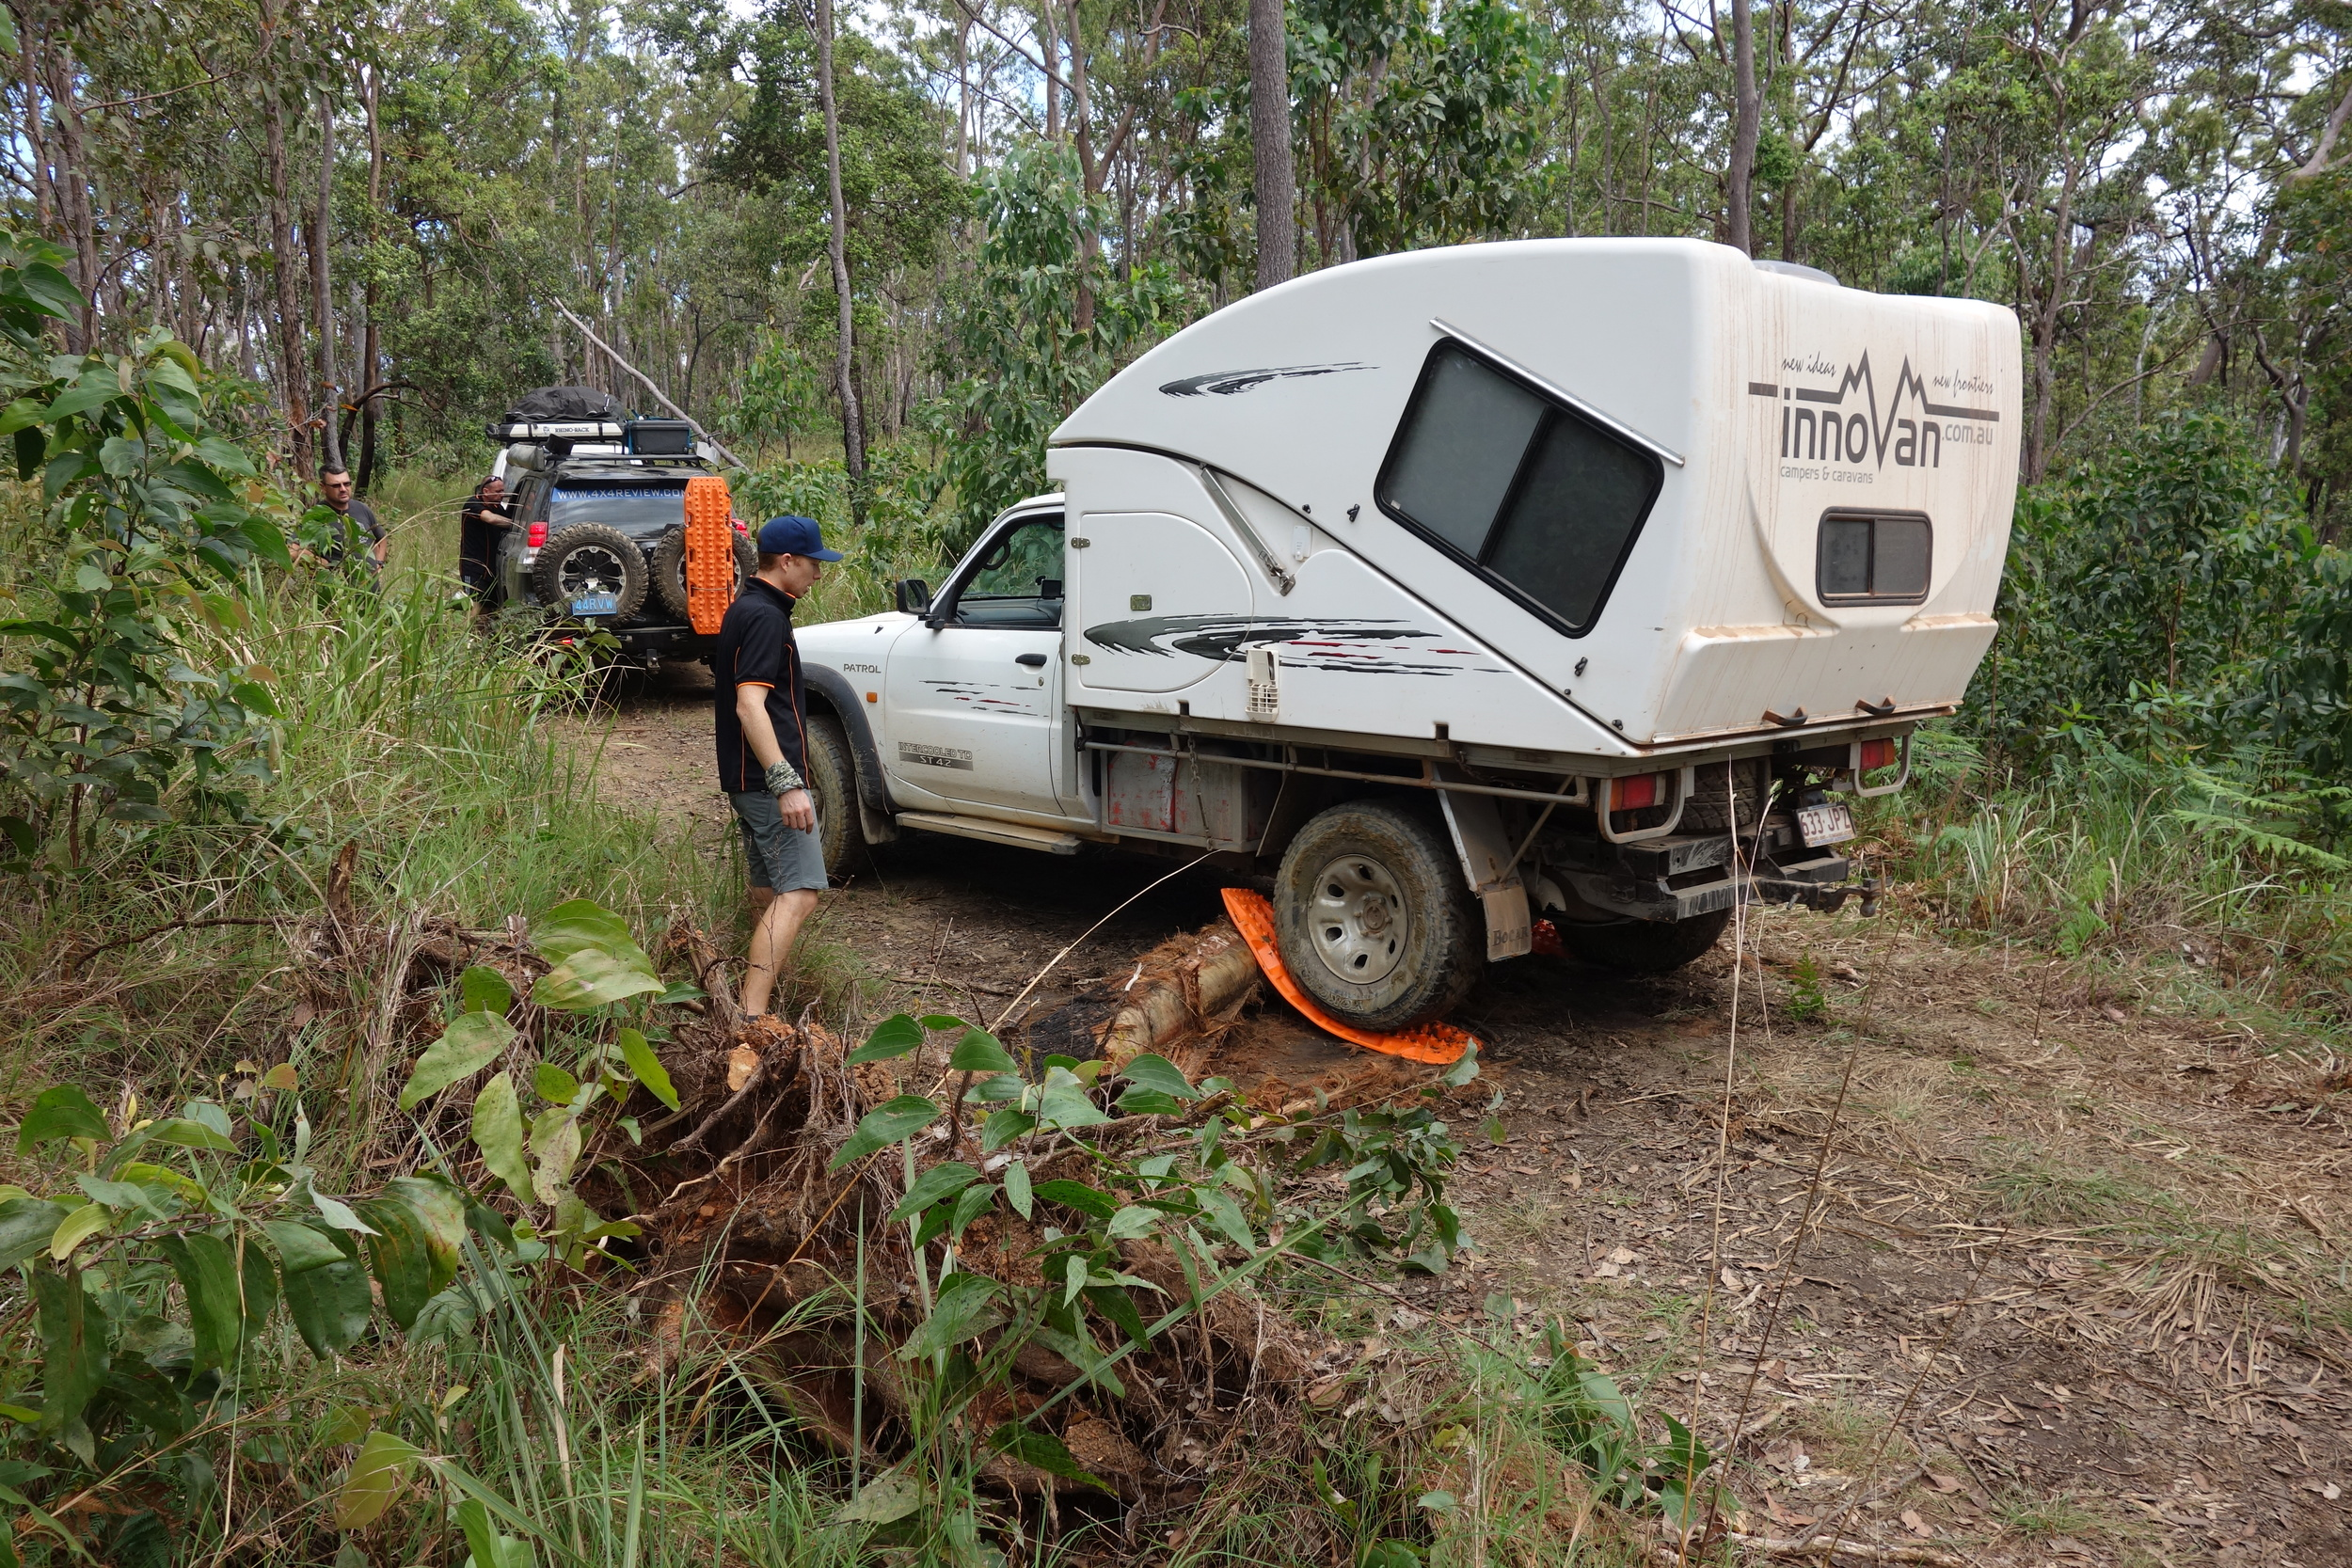 Innnovan XS and Maxtrax product testing in full swing - FNQ 2014